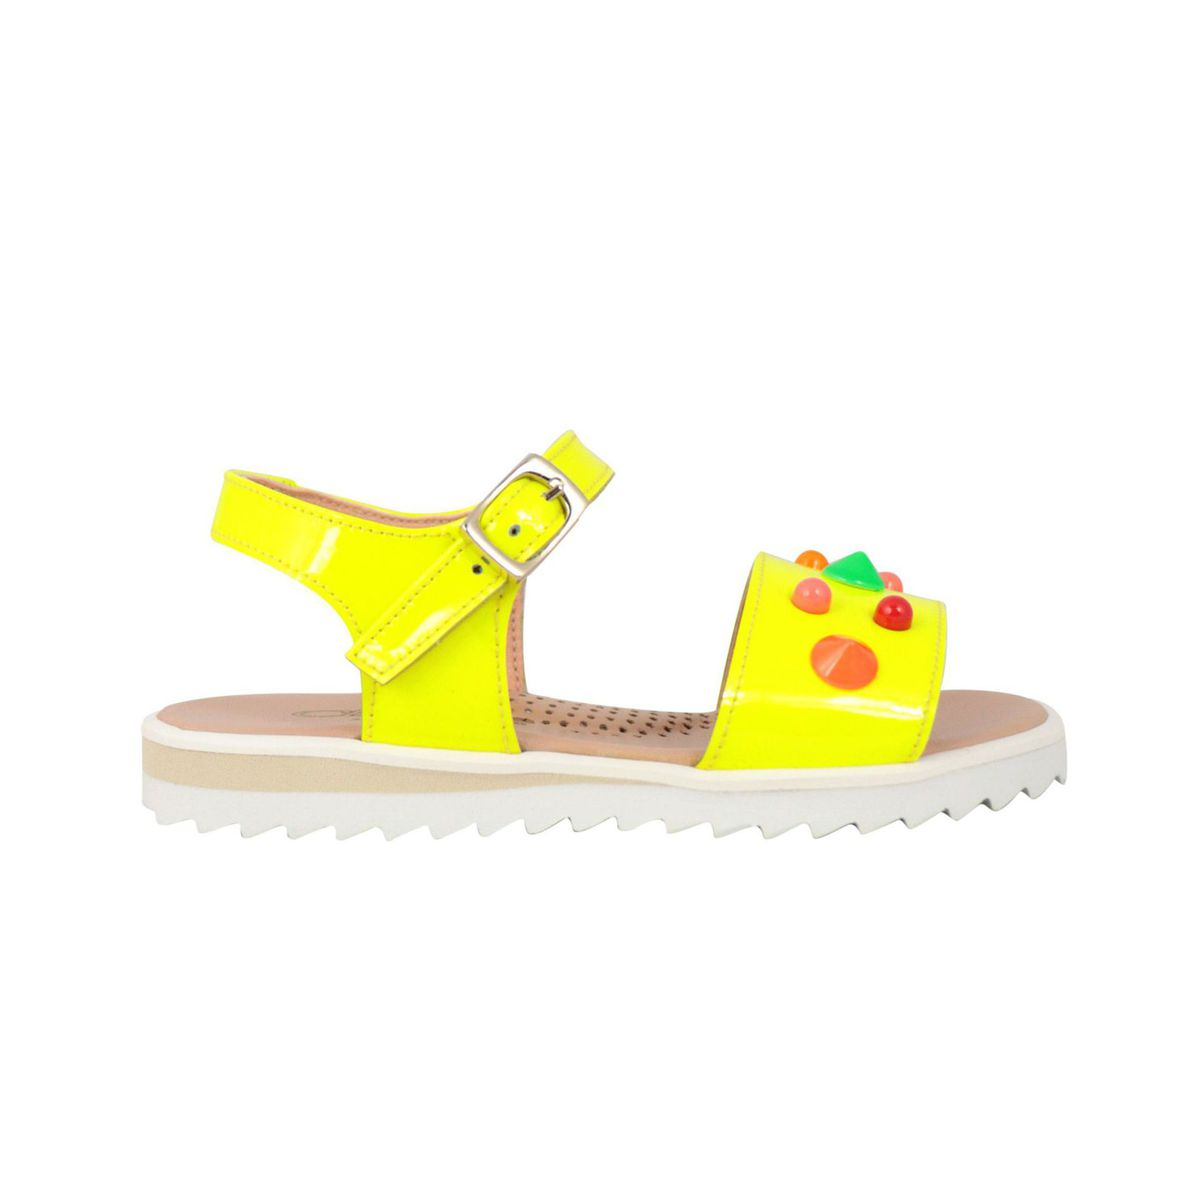 Sandal in shiny leather with multicolor inserts Fluo yellow Clarys